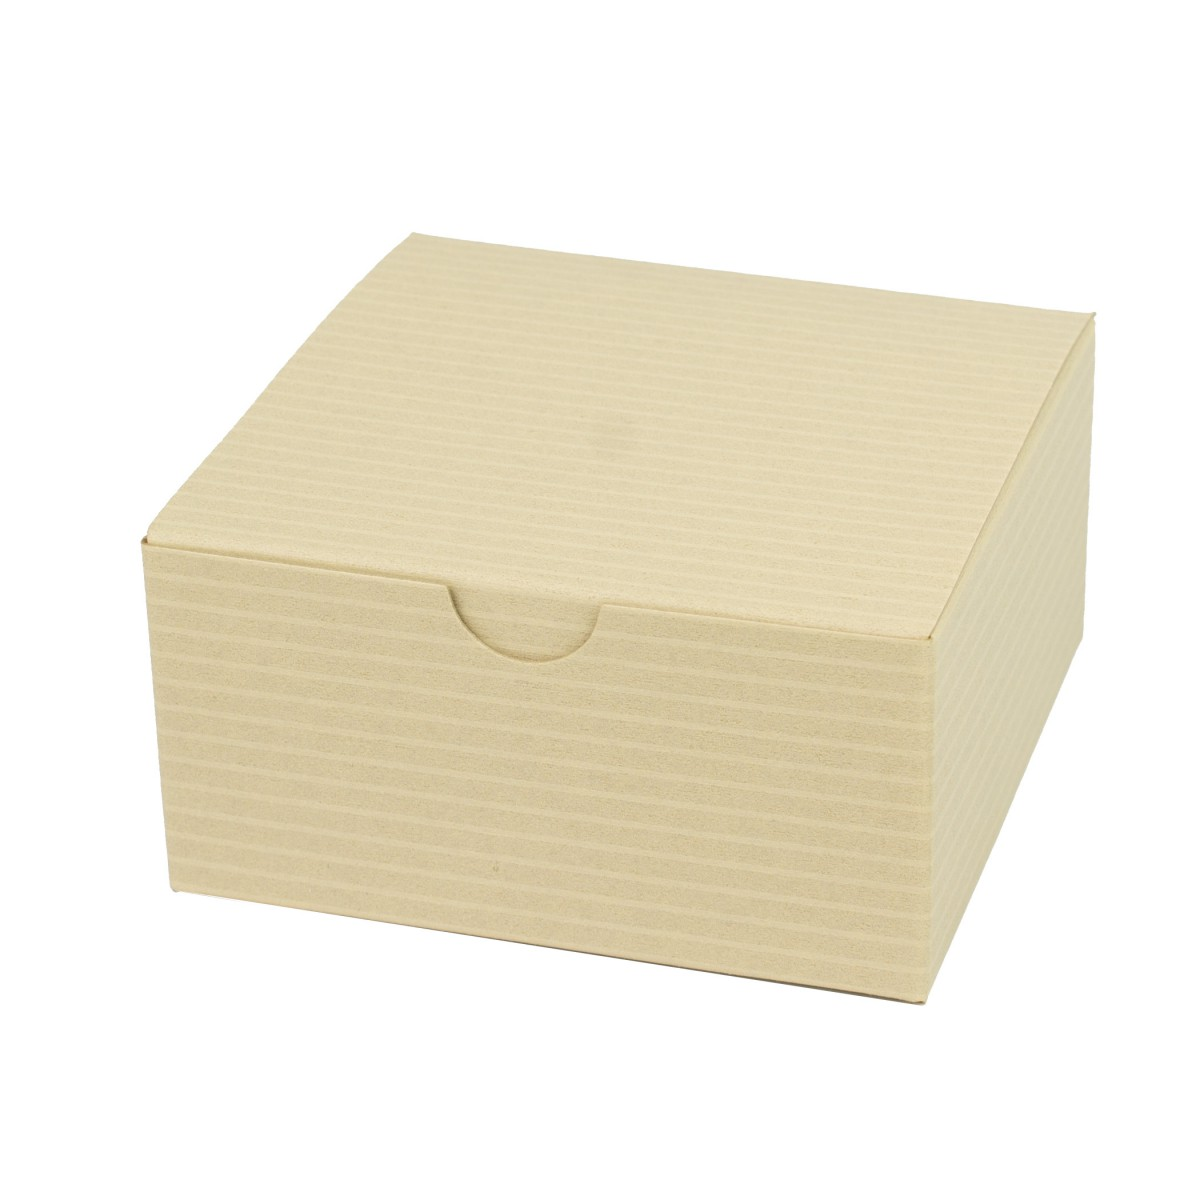 4 x 4 x 2 OATMEAL TINTED TUCK-TOP GIFT BOXES